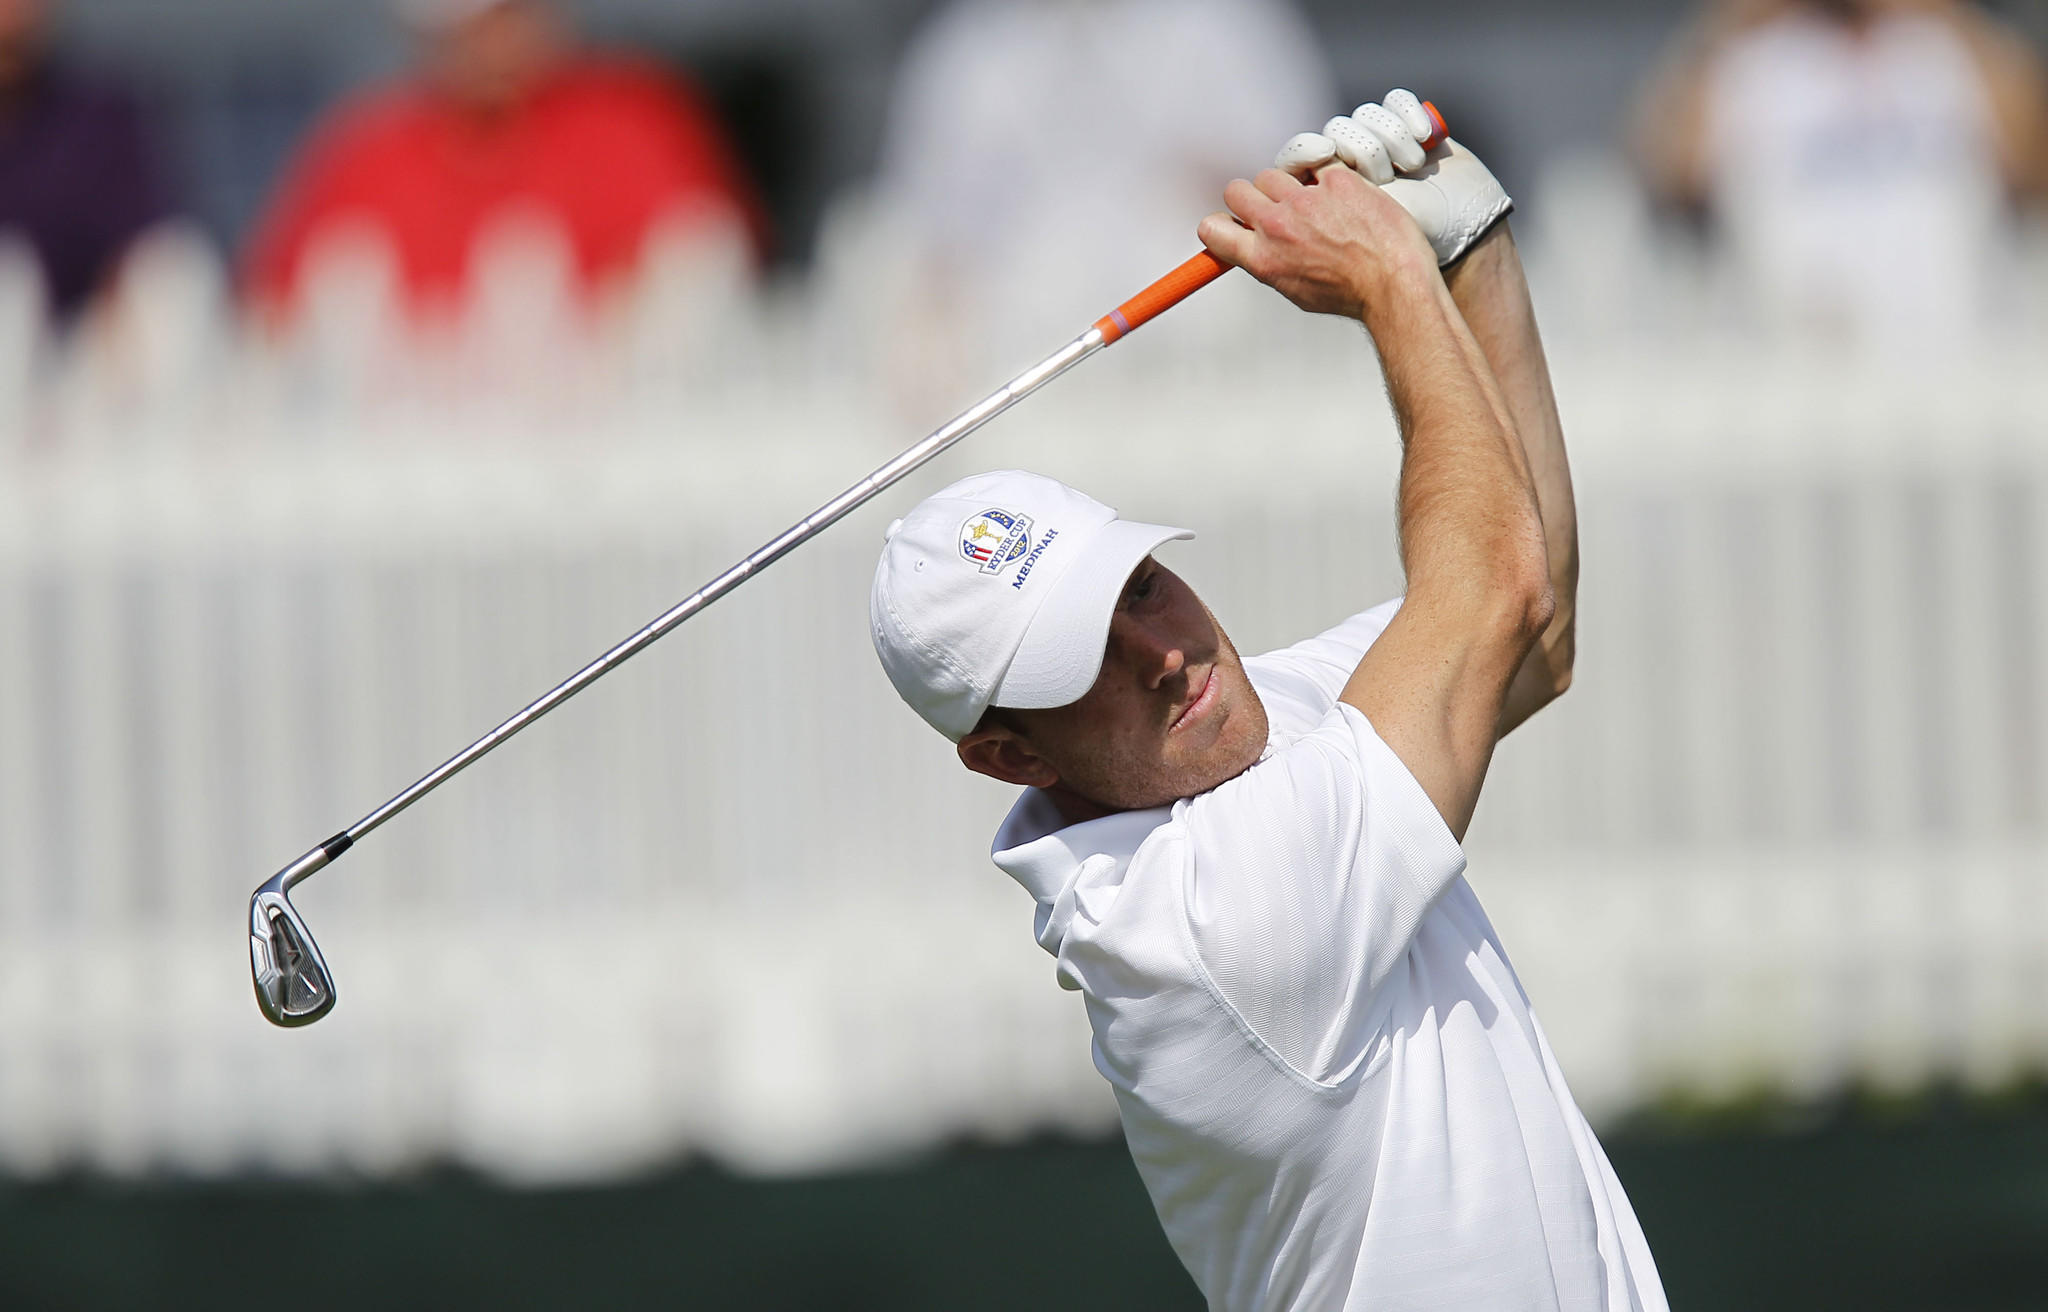 Chicago Bears punter Robbie Gould teeing off at a celebrity golf event in 2012.